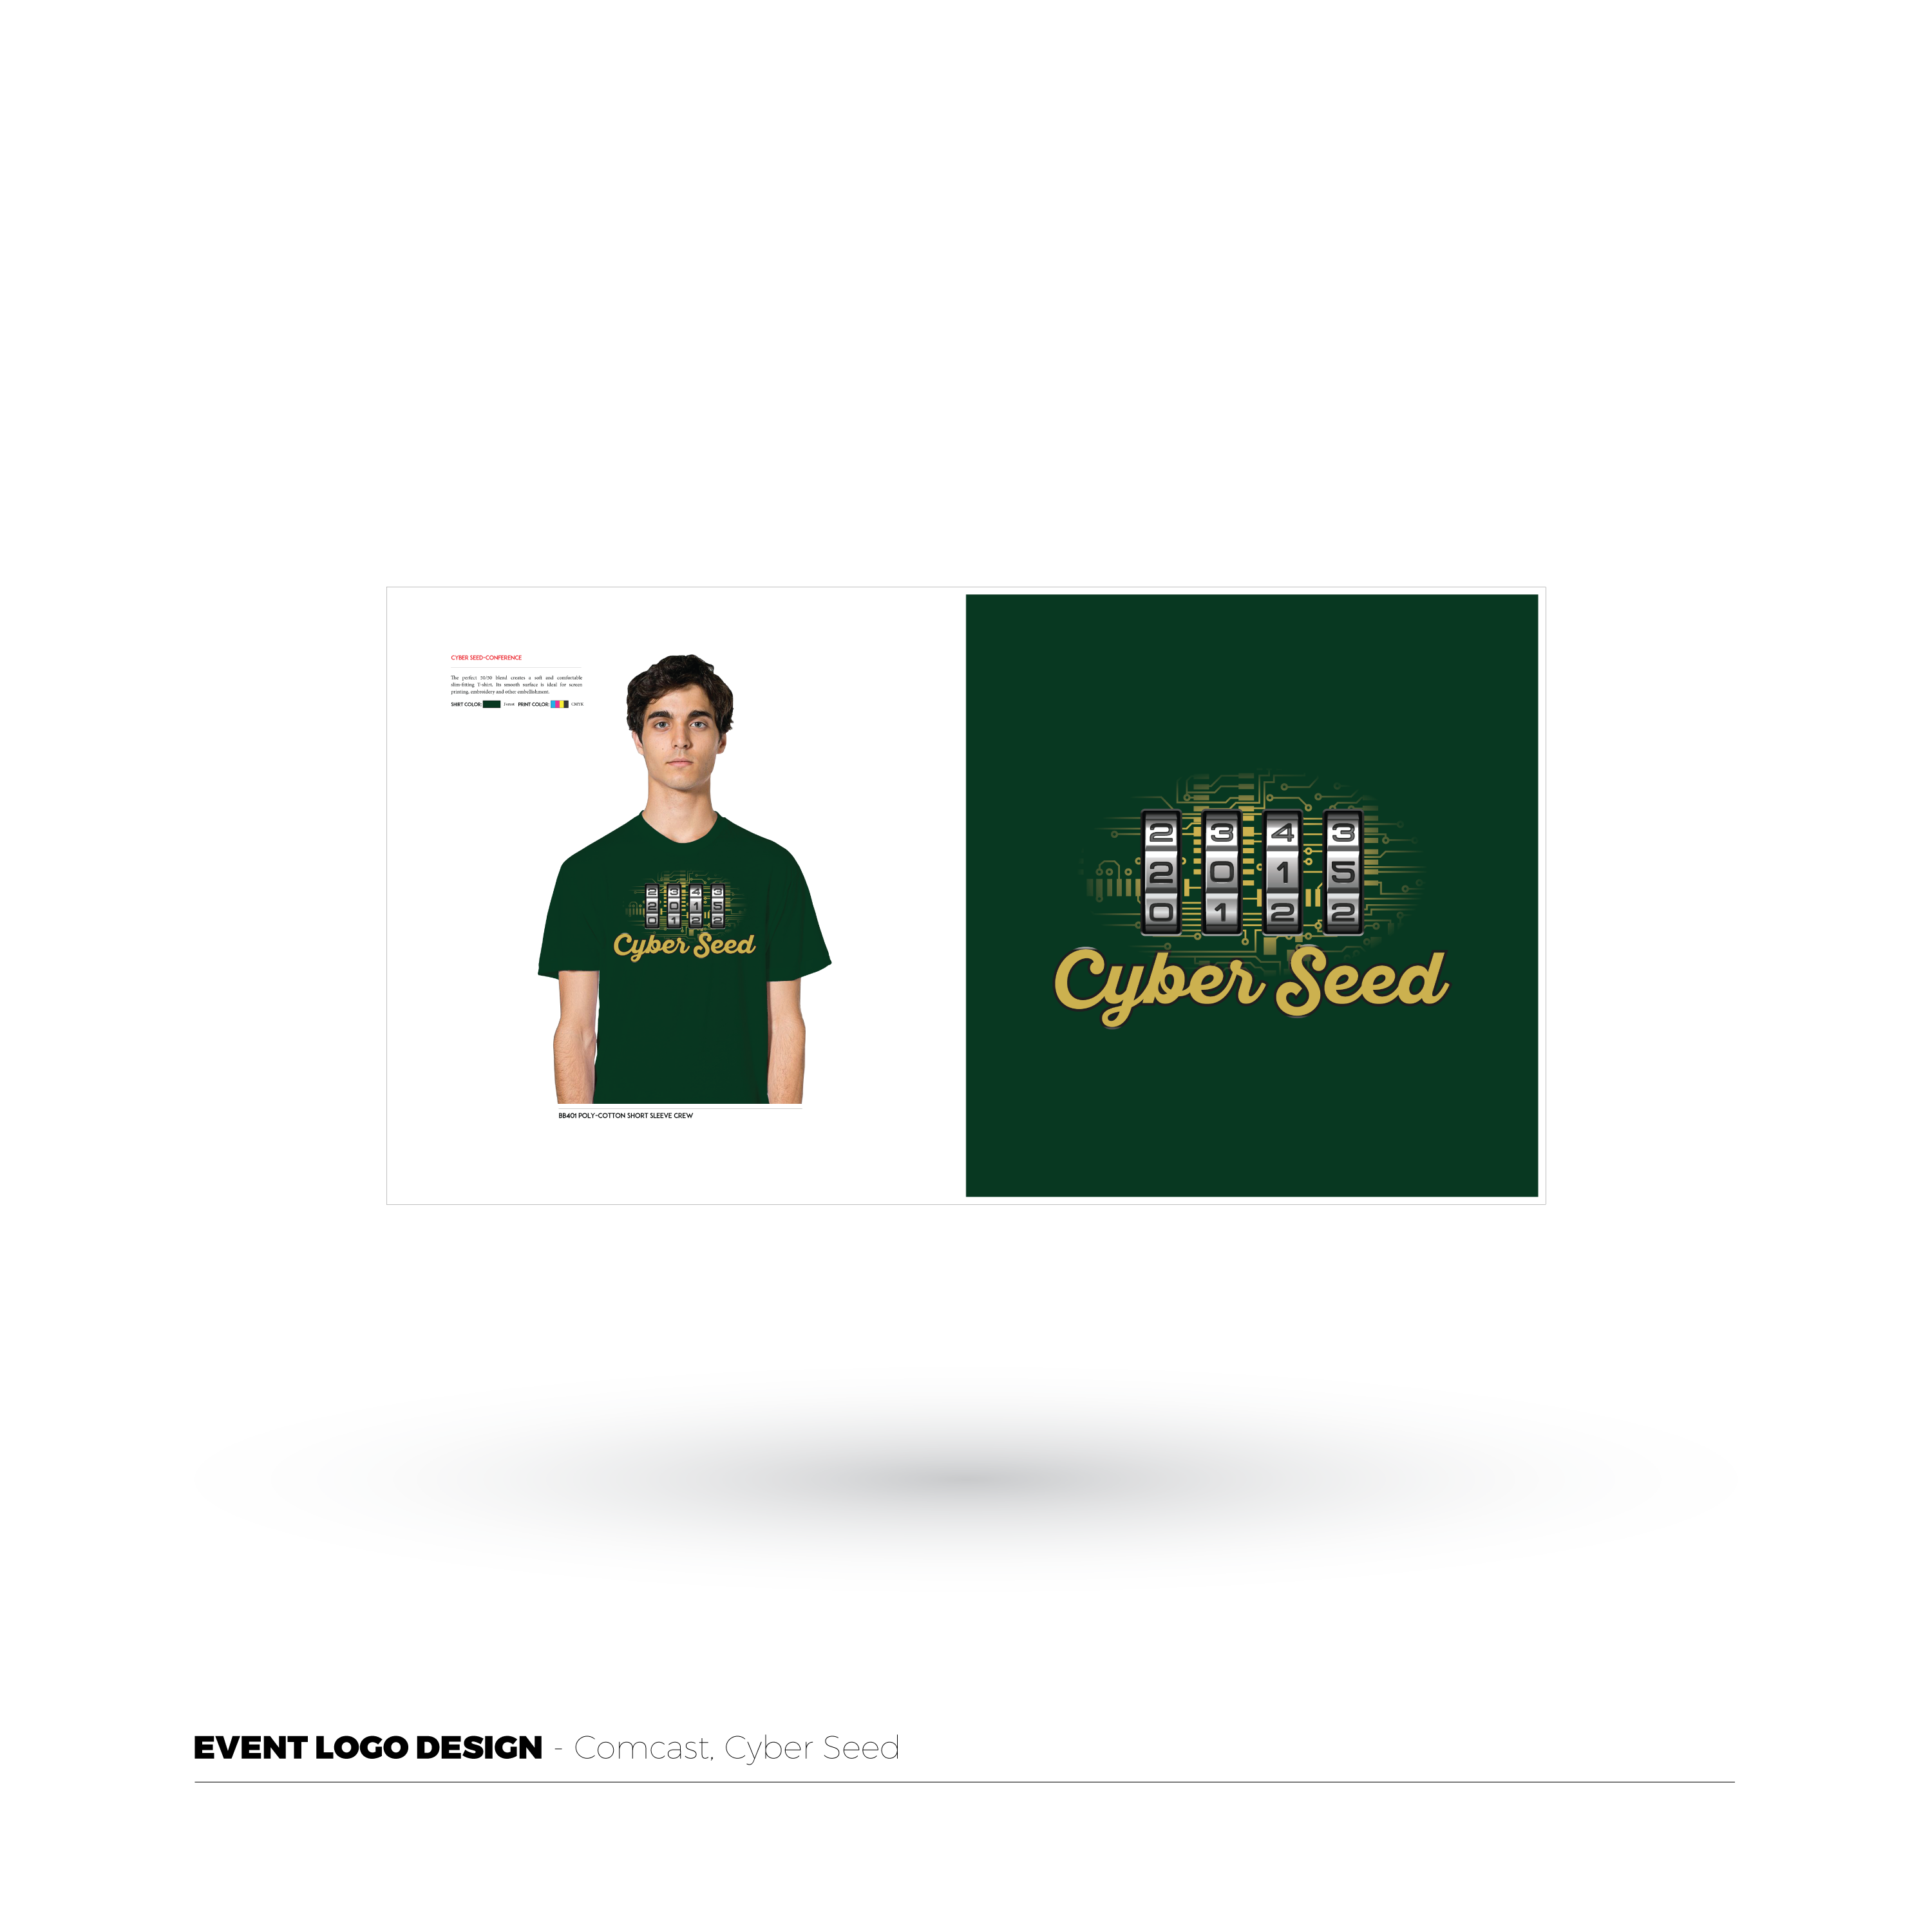 Comcast's Cyber Seed Shirt Graphics